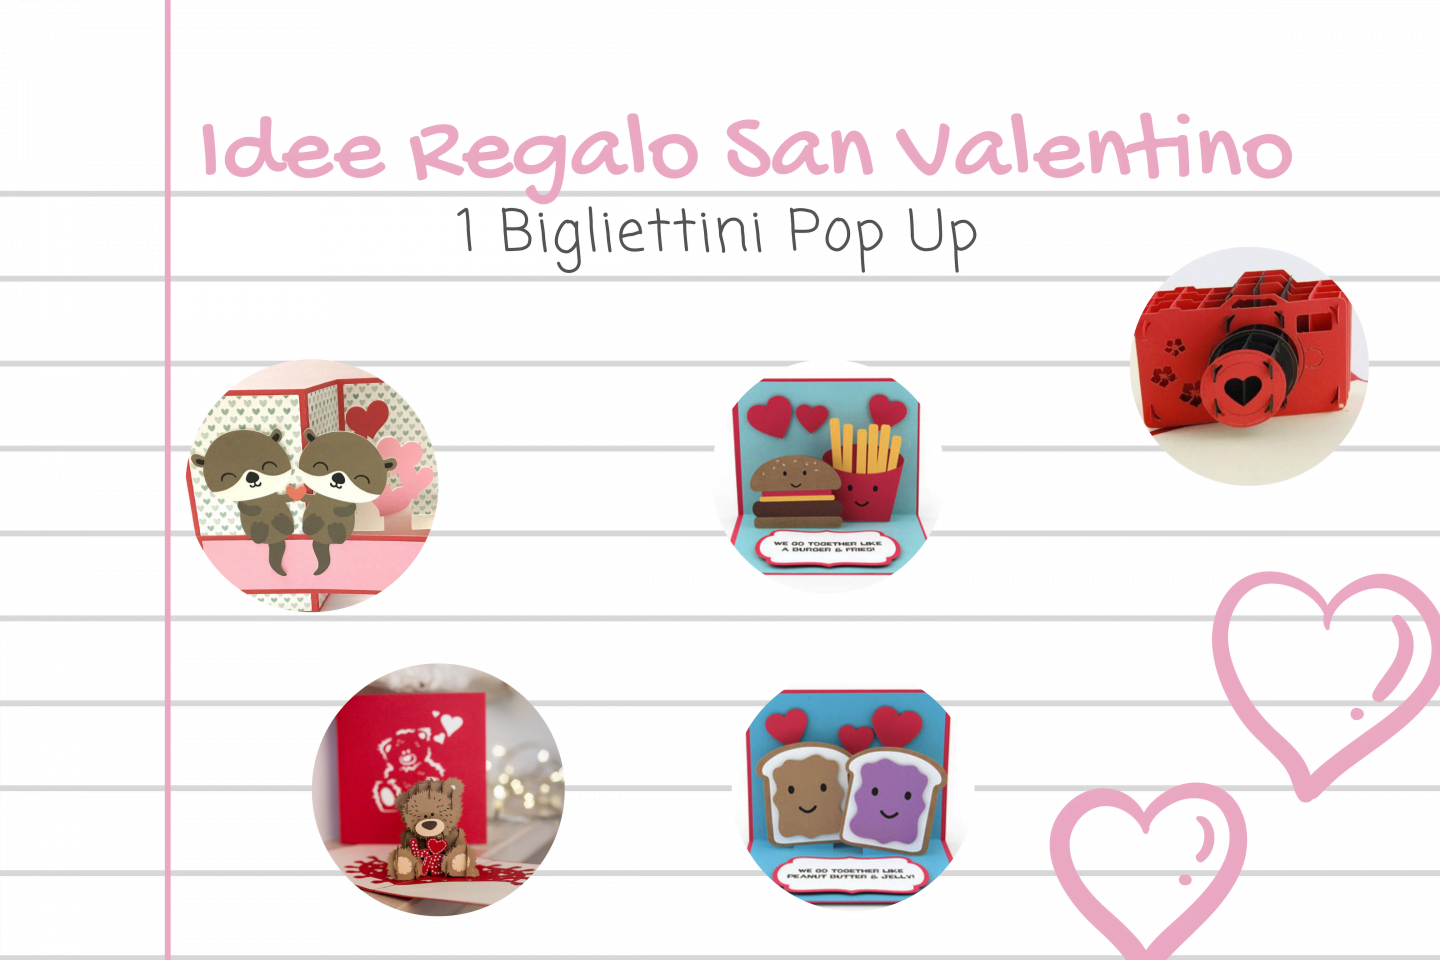 Idea regalo San Valentino: bigliettini pop up